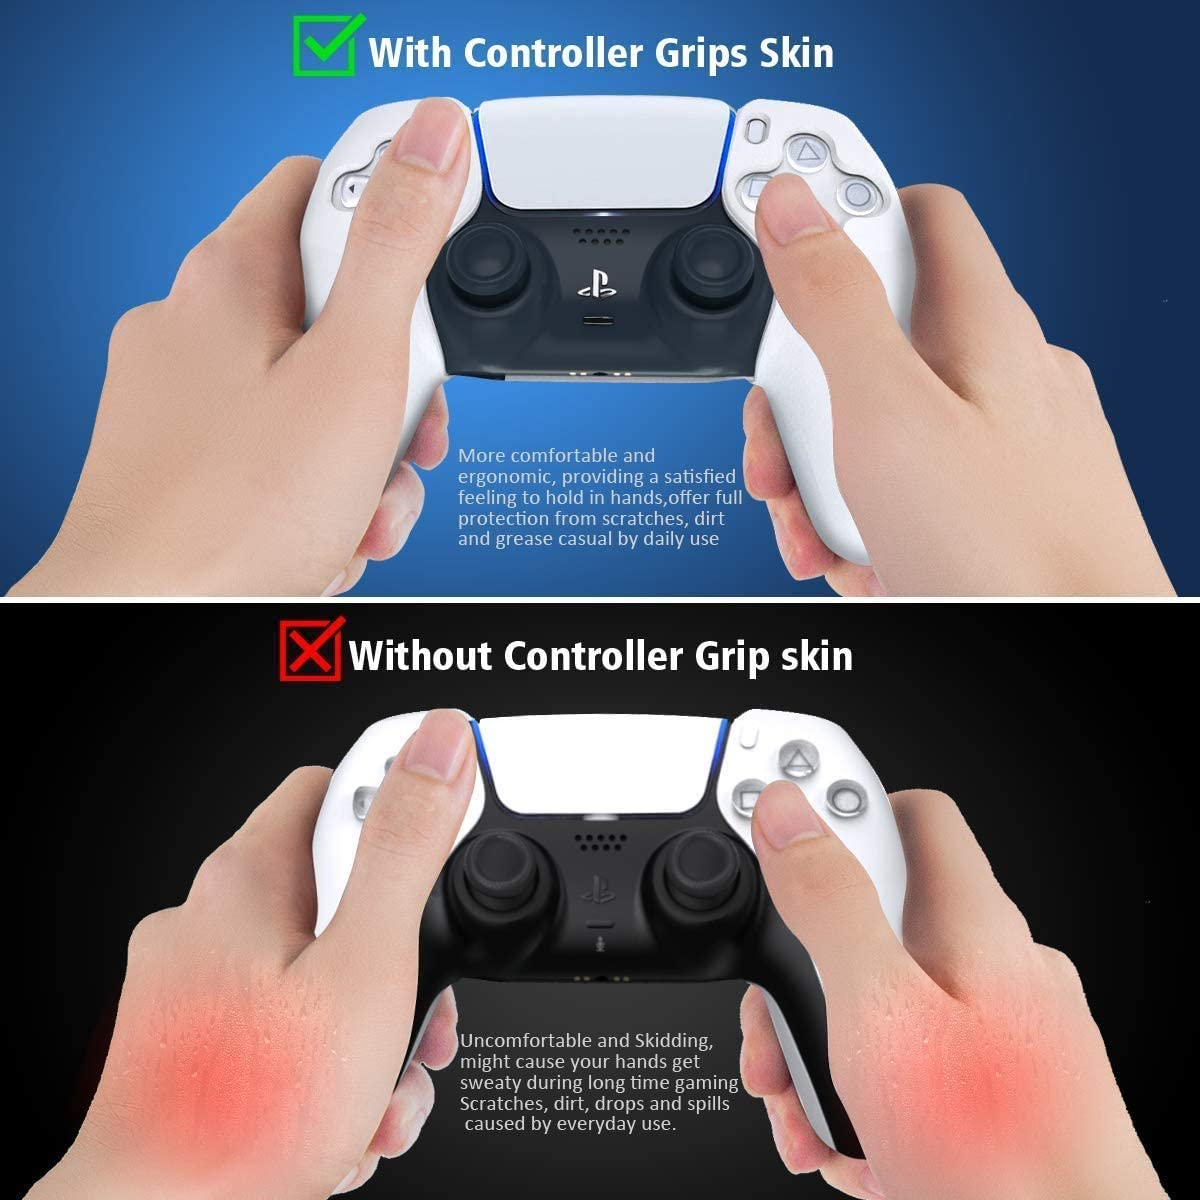 PS5 Controller Skin Anti-Slip Silicone Cover Protective Case Skins Comfortable Grip Blue + Red PS5 Accessories 8 Thumb Grips for Sony Playstation 5 Dualsense Wireless Controller UK SELLER